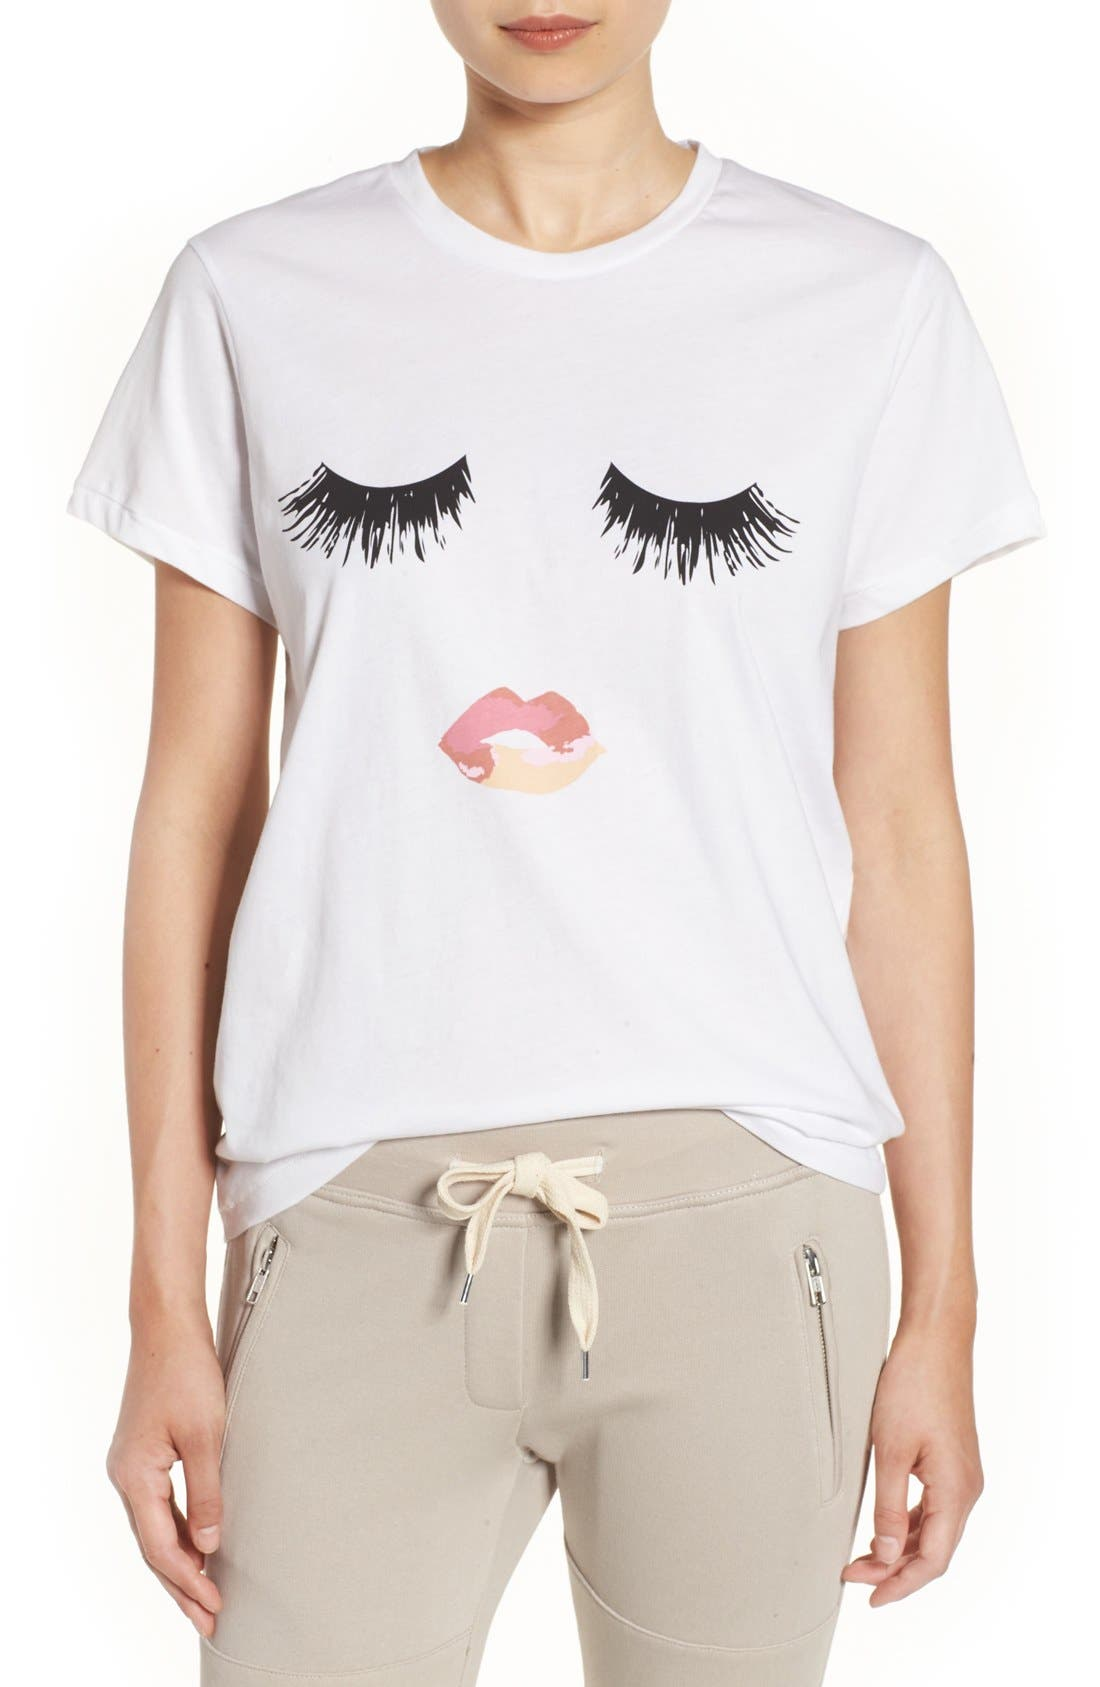 Alternate Image 1 Selected - Sincerely Jules 'Lips & Lashes' Graphic Tee